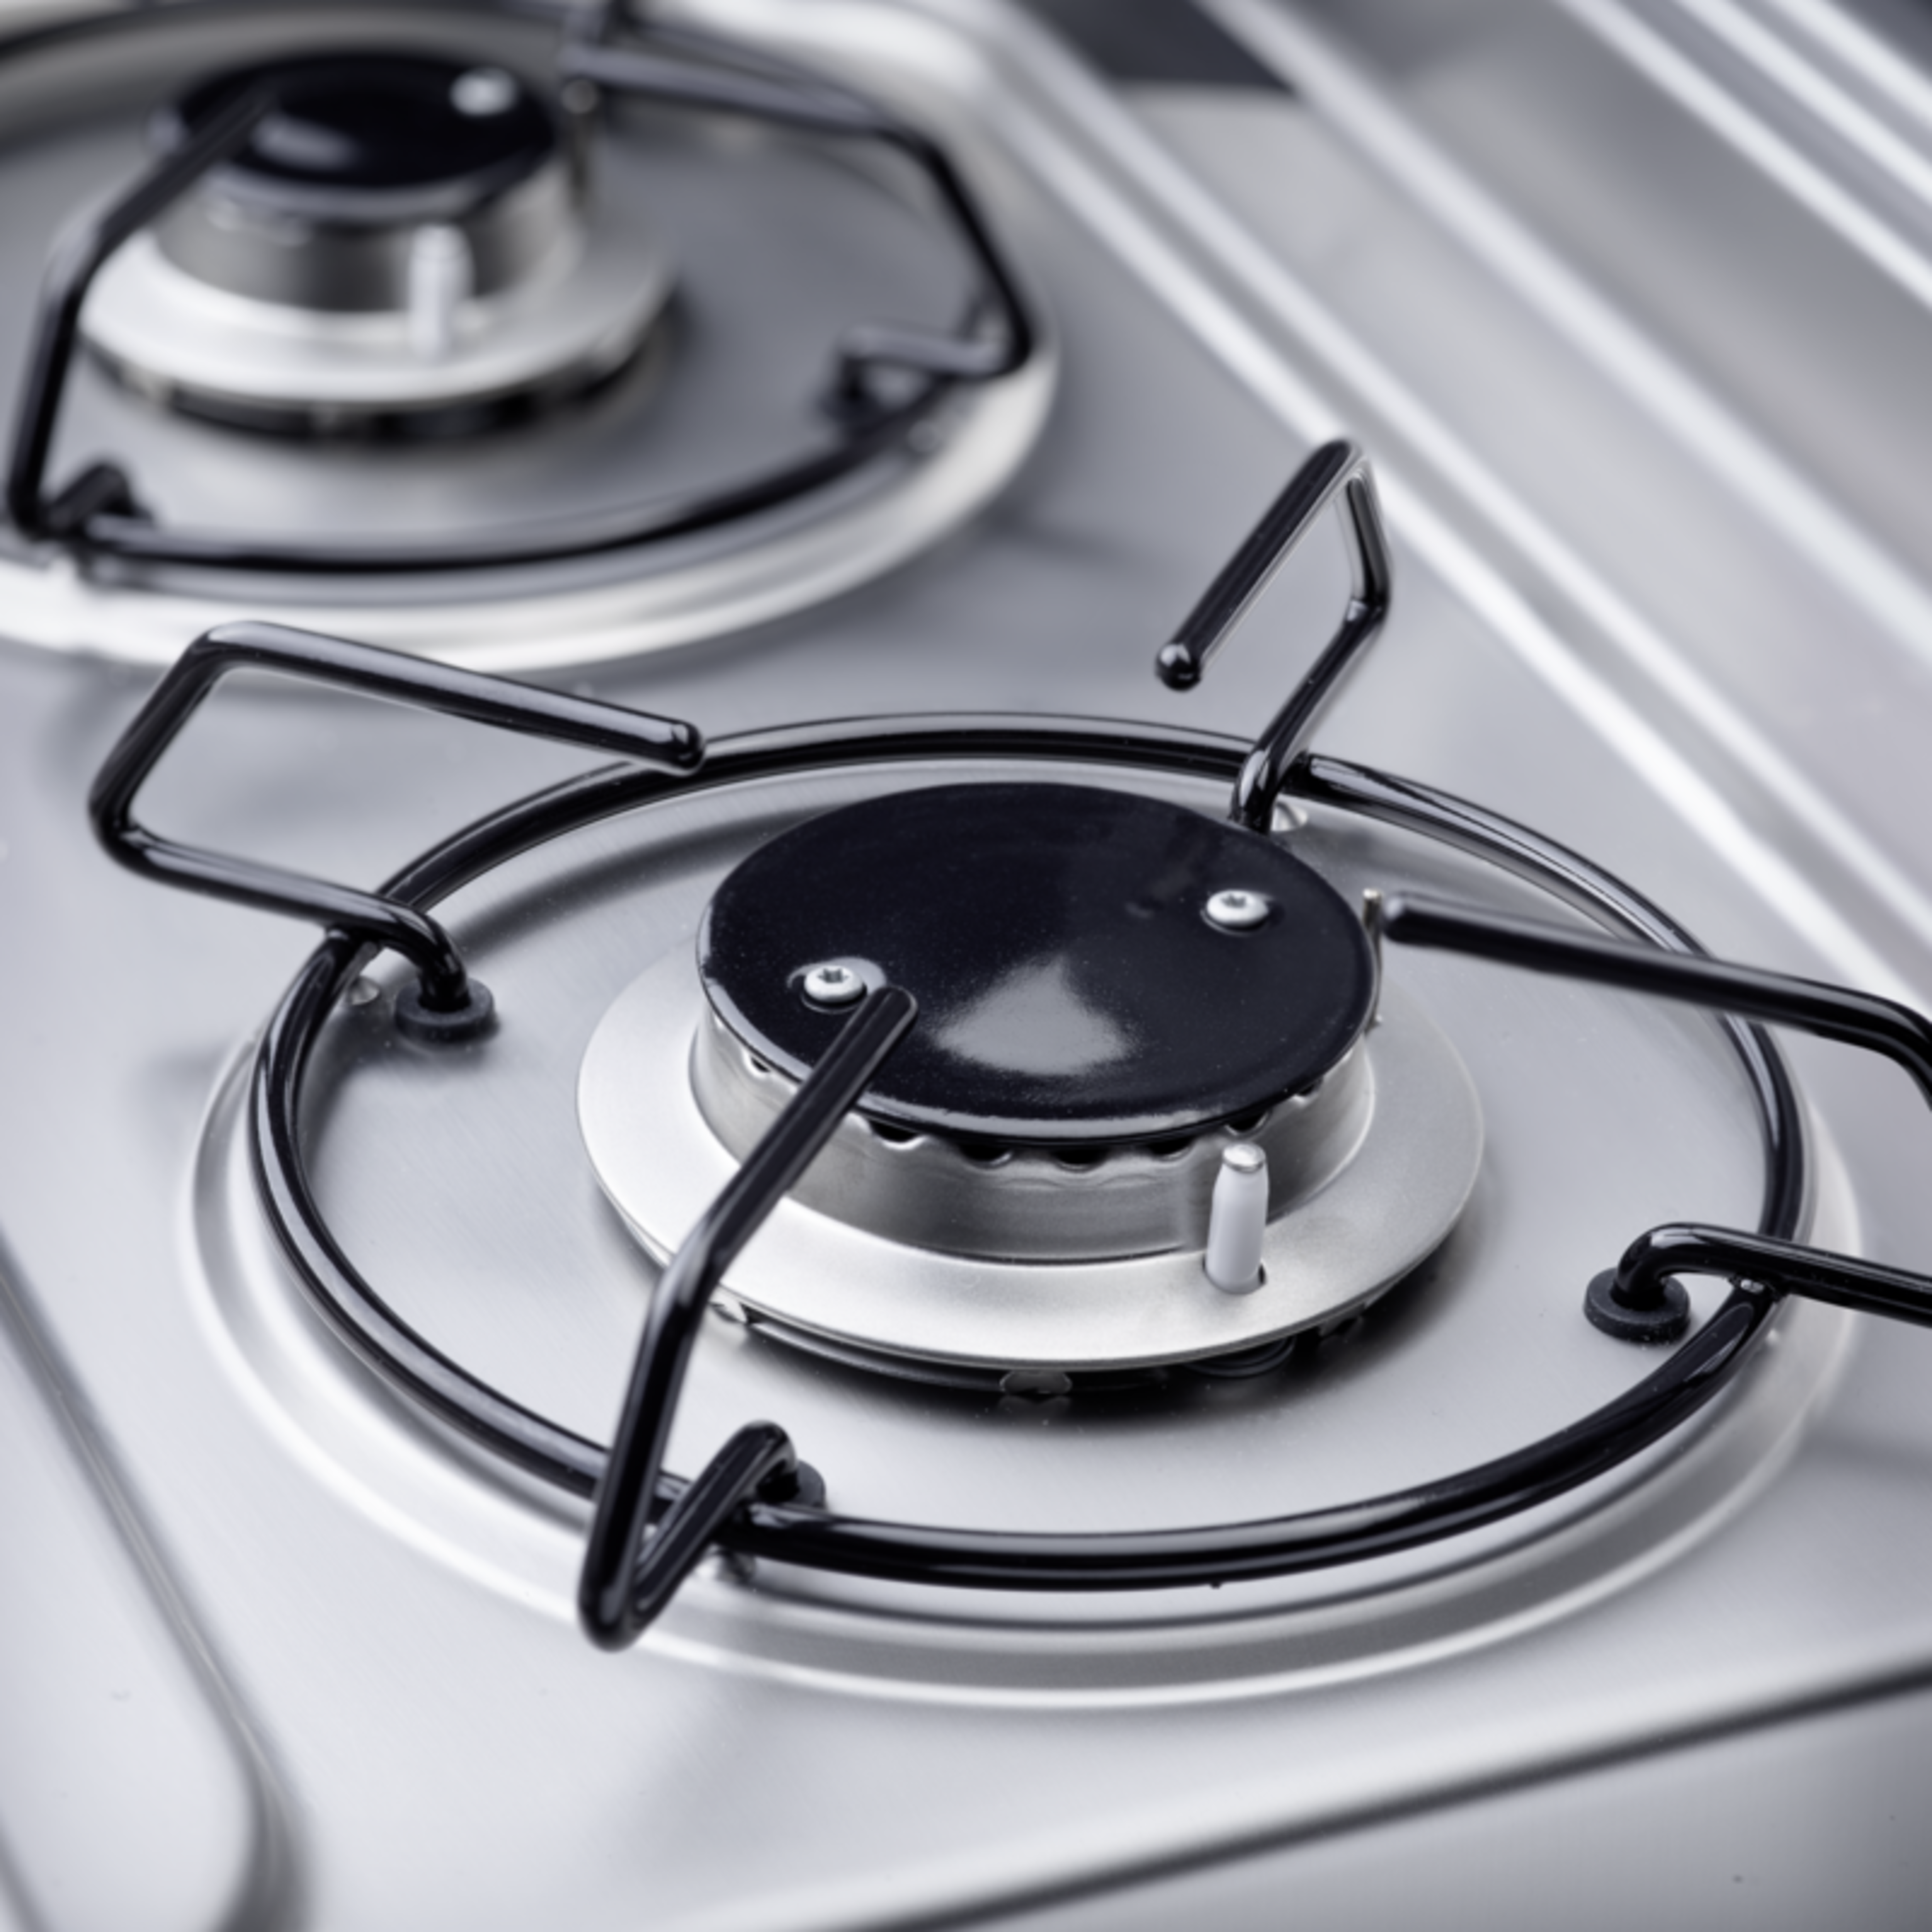 Two-burner hob ideal for cooking in small spaces